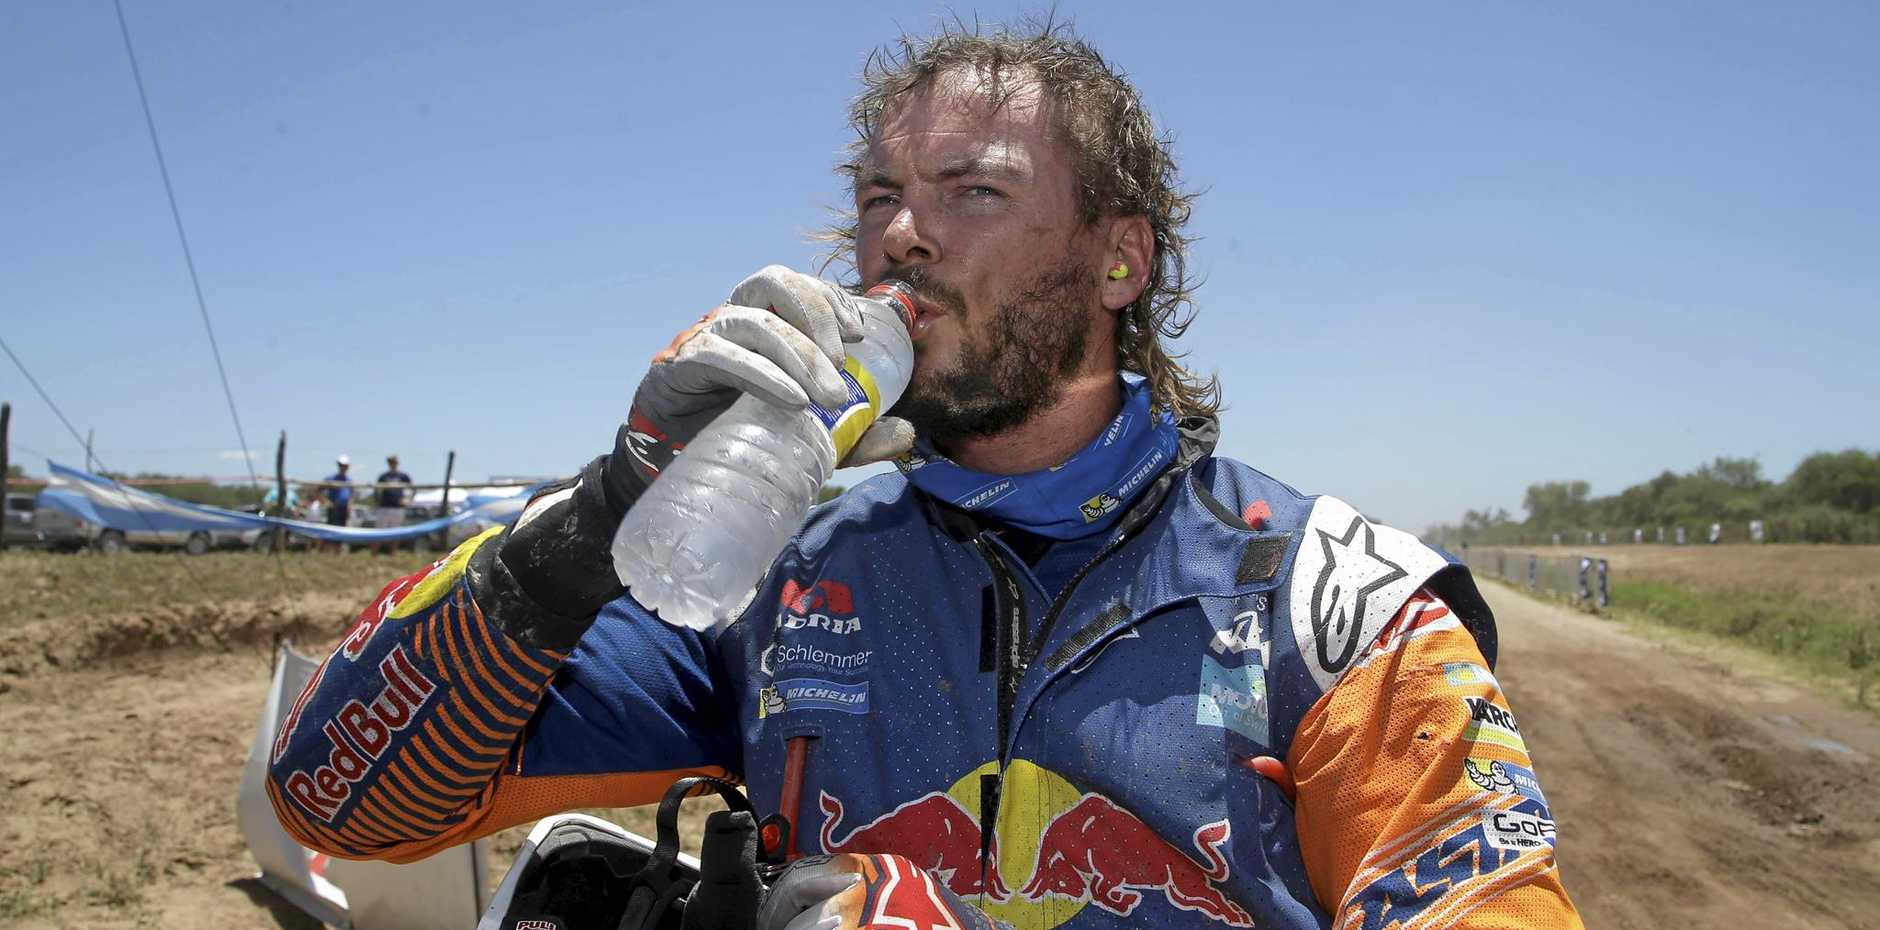 Australia's KTM rider Toby Price after finishing the second stage of the 2017 Dakar Rally.